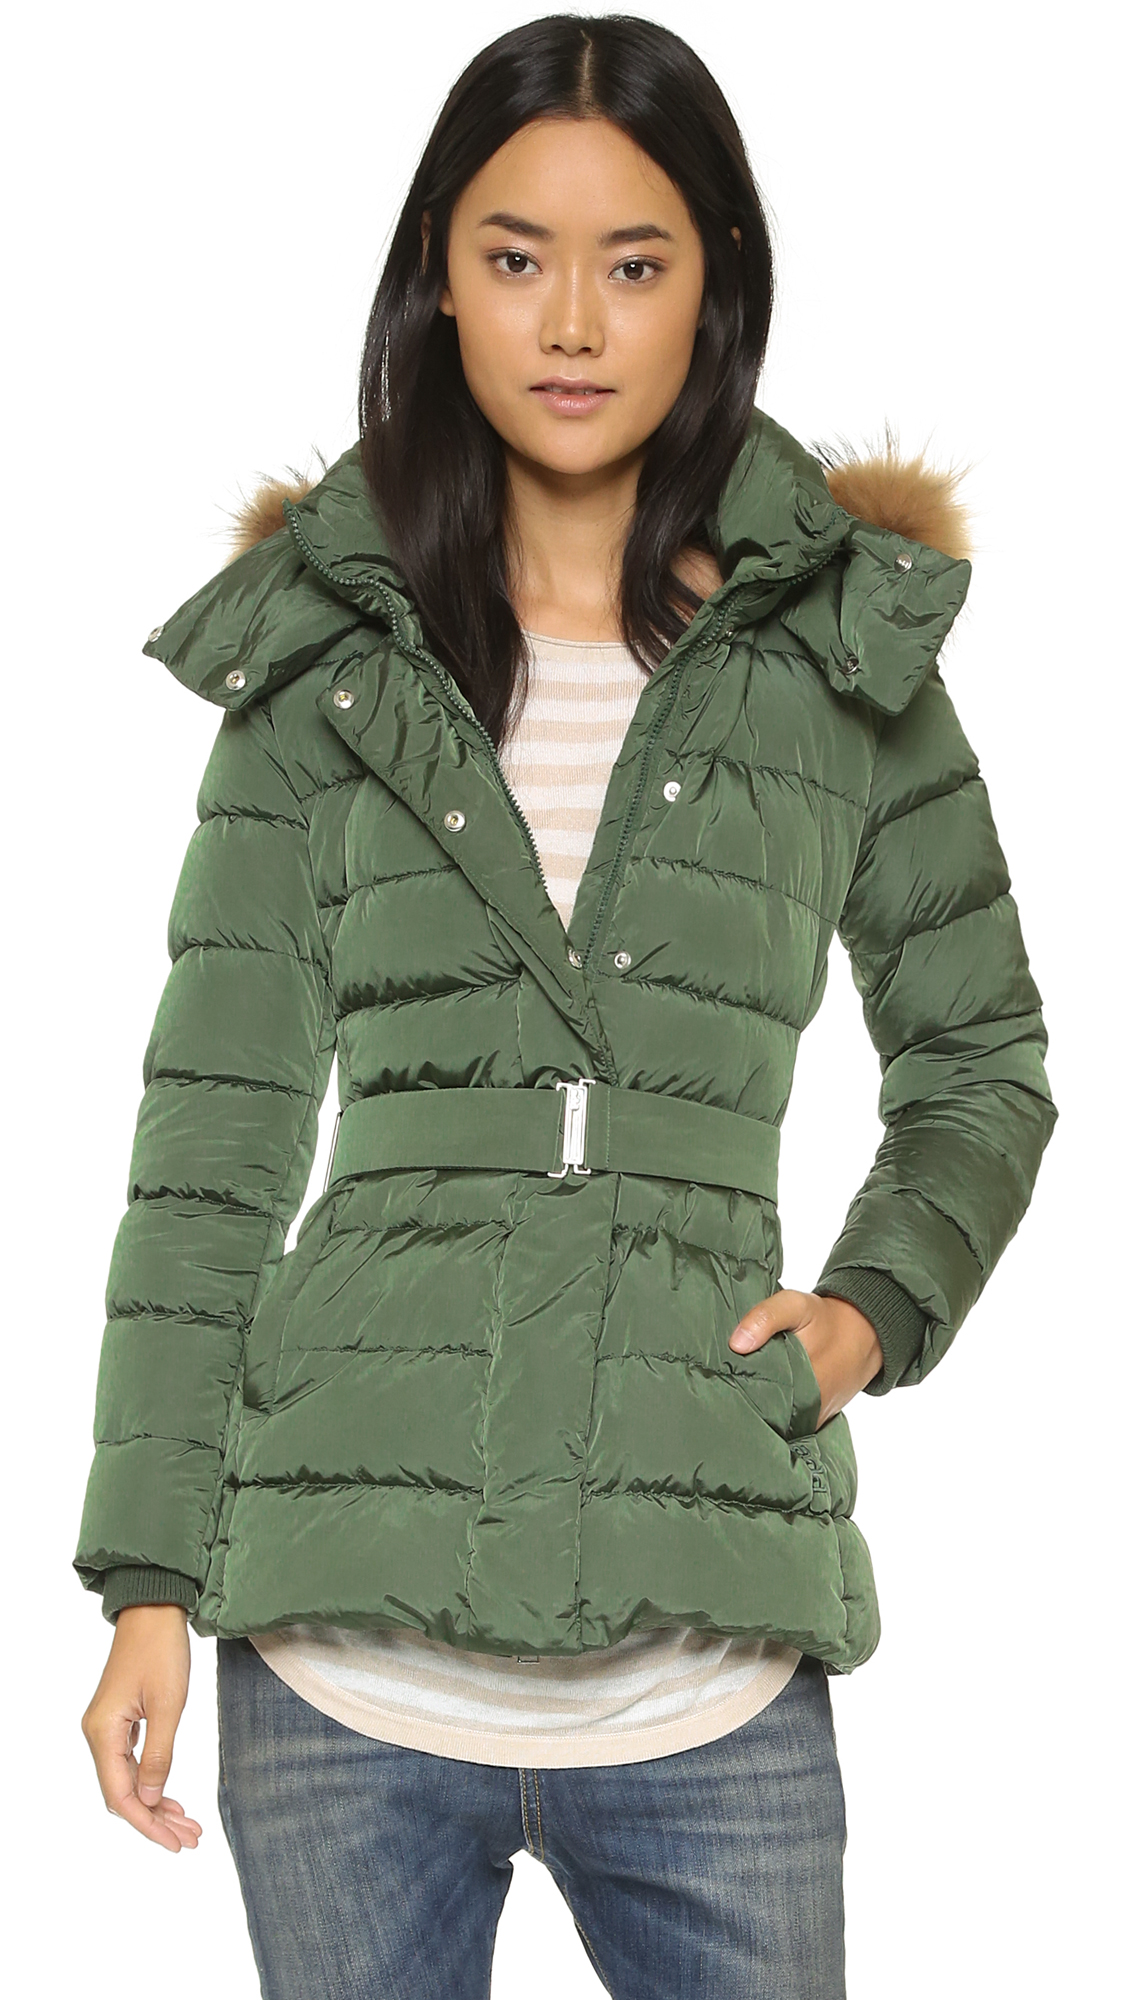 a6efdfcd7180 Add Down Down Jacket with Fur Hood